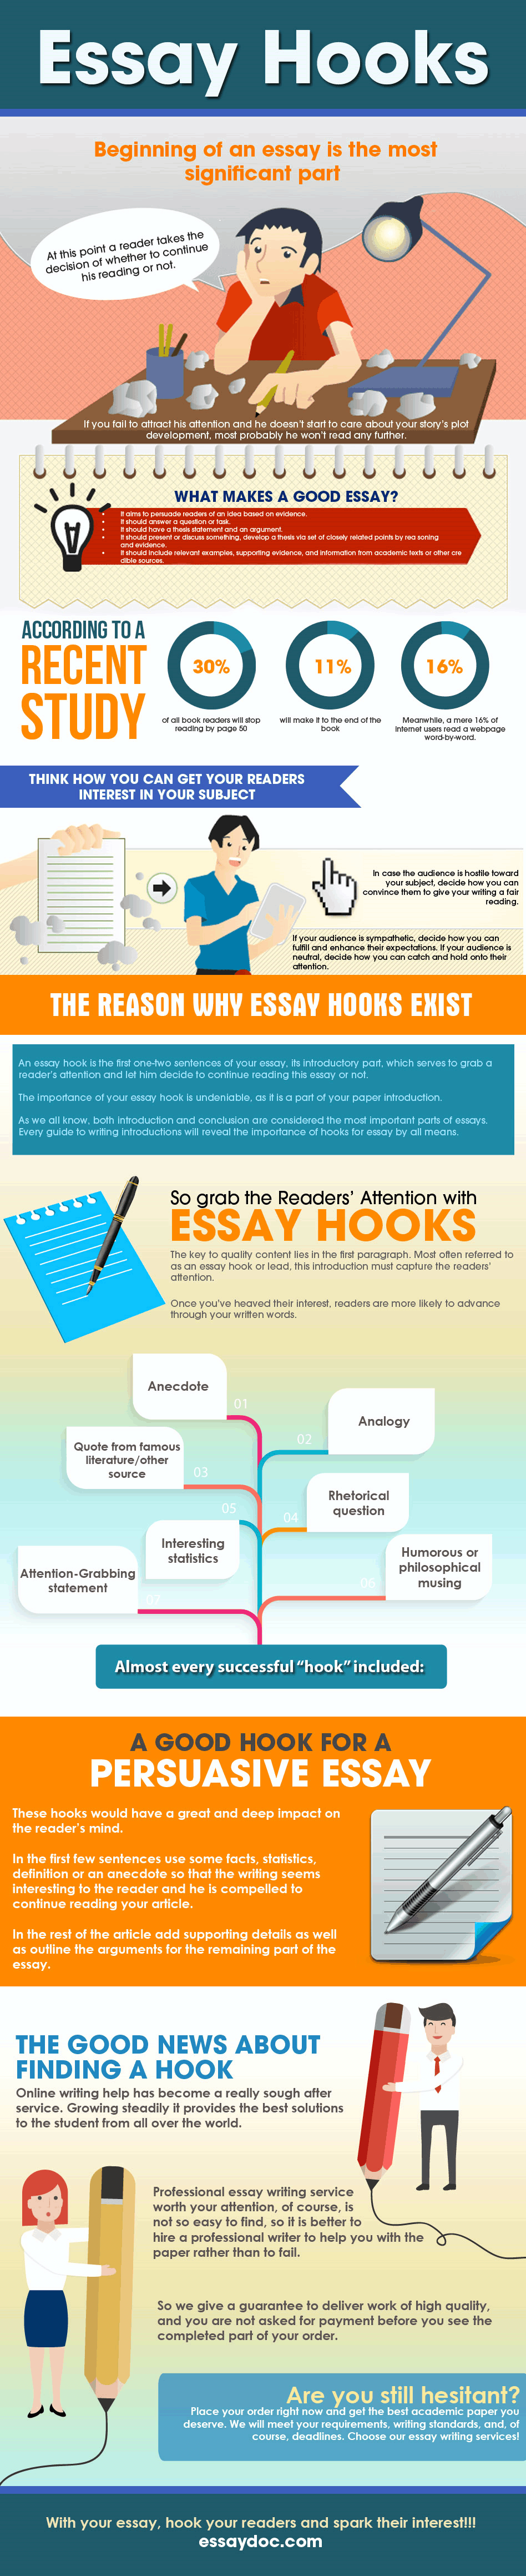 essay hooks infographic thesis statement hooks and critical essay to get